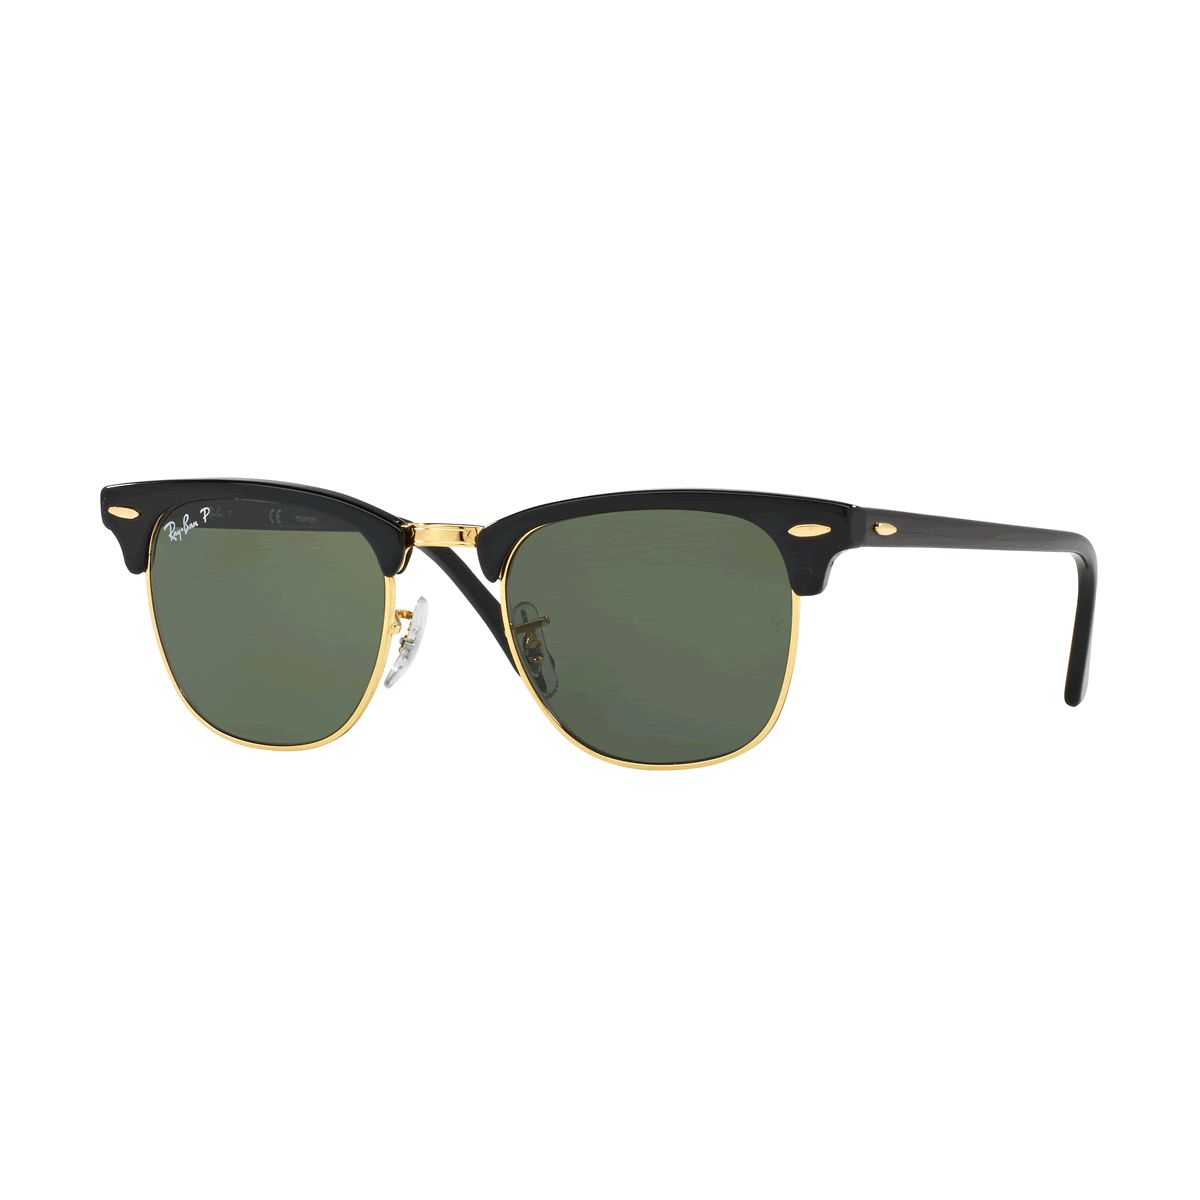 a7ab6e90c1a Ray-Ban Sunglasses - Mens   Womens Ray-Bans - Macy s